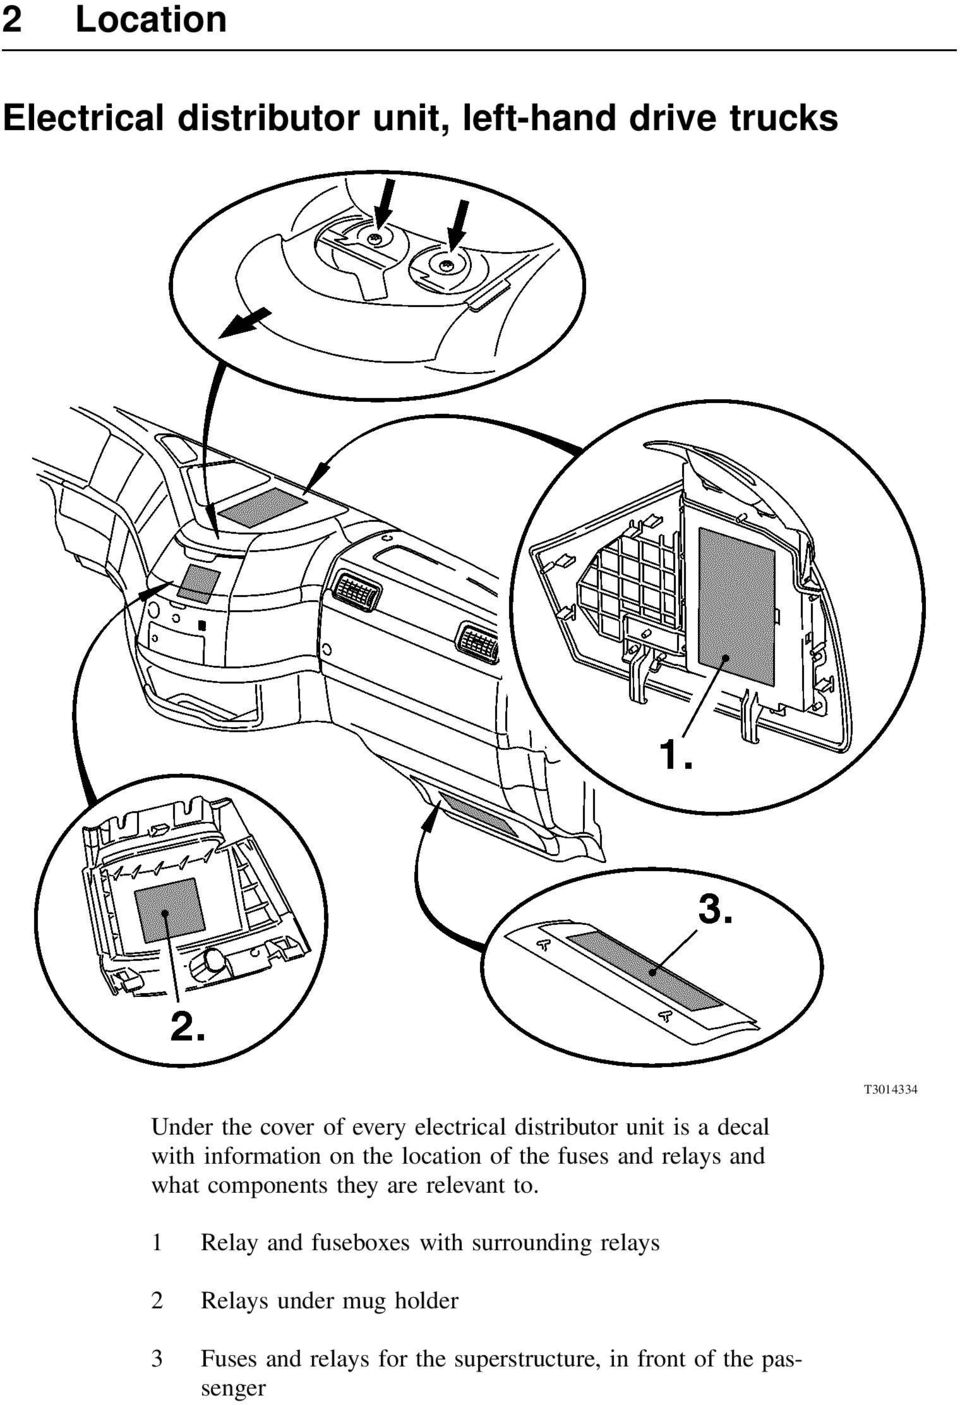 Operating Instructions Fuses And Relays T Pdf Volvo Fh12 Fuse Box What Components They Are Relevant To